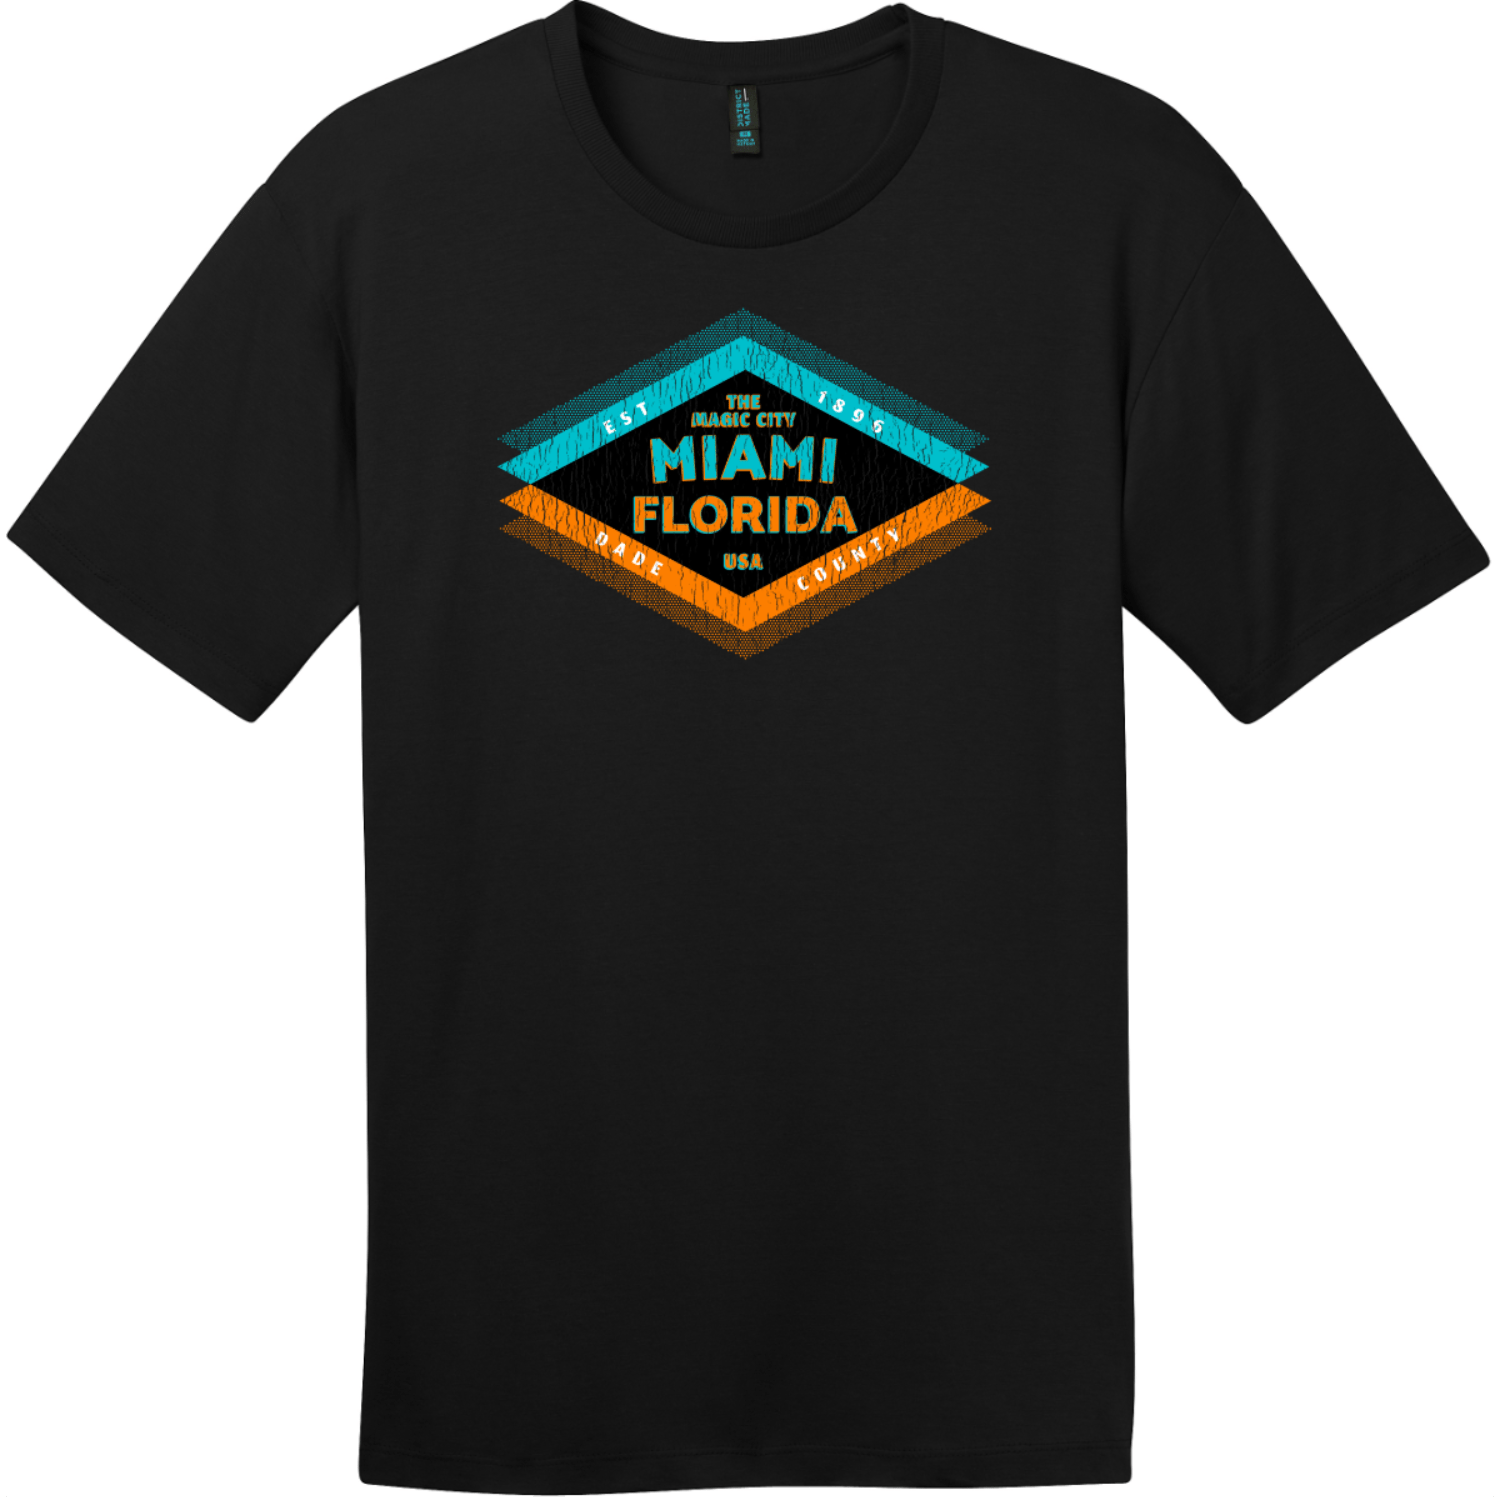 Miami Florida The Magic City T-Shirt Jet Black District Perfect Weight Tee DT104